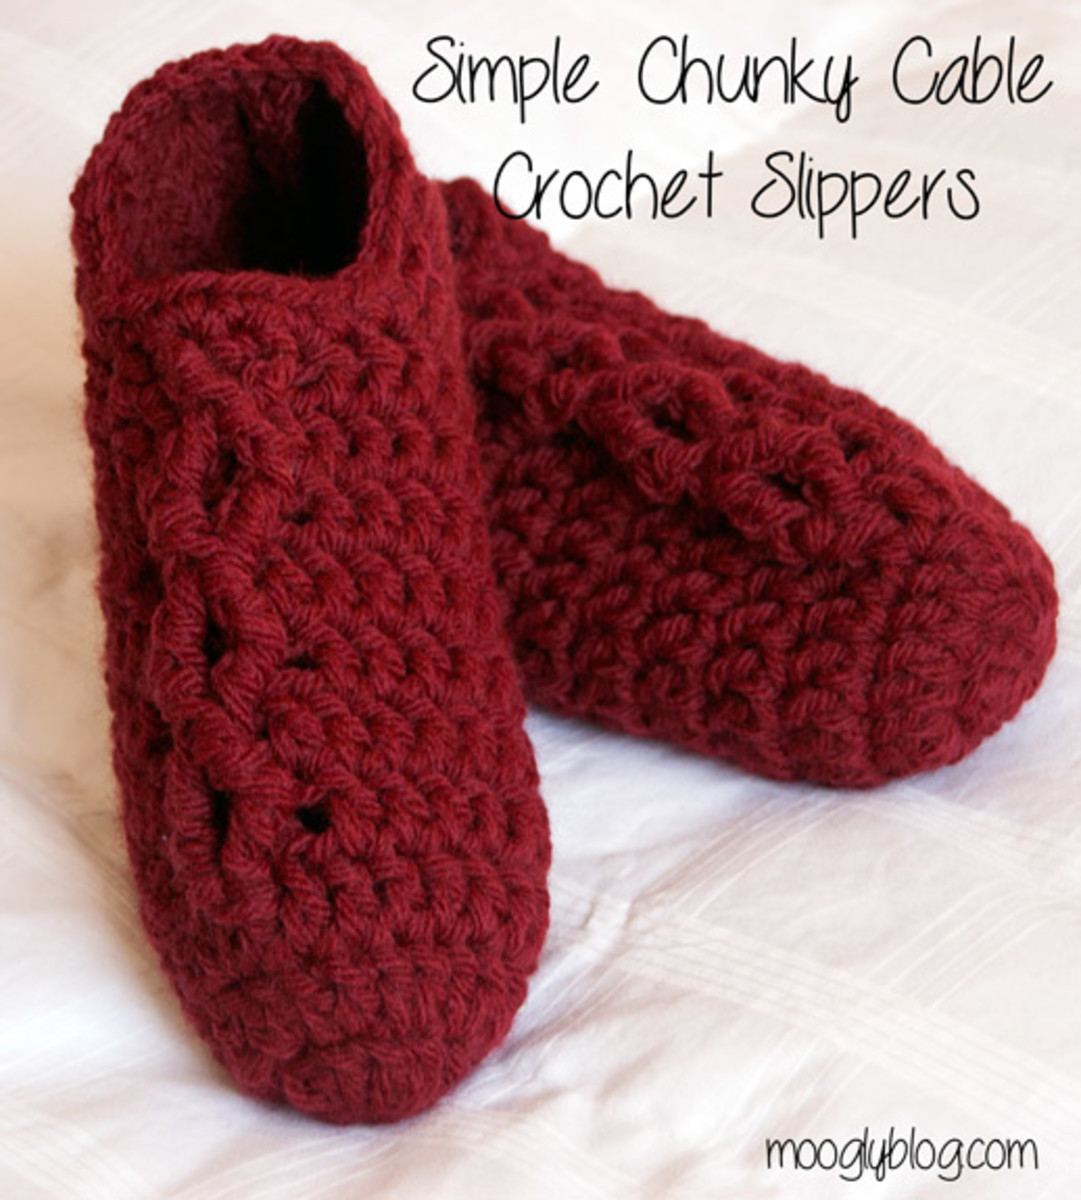 Crochet Simple Chunky Cabled Slippers